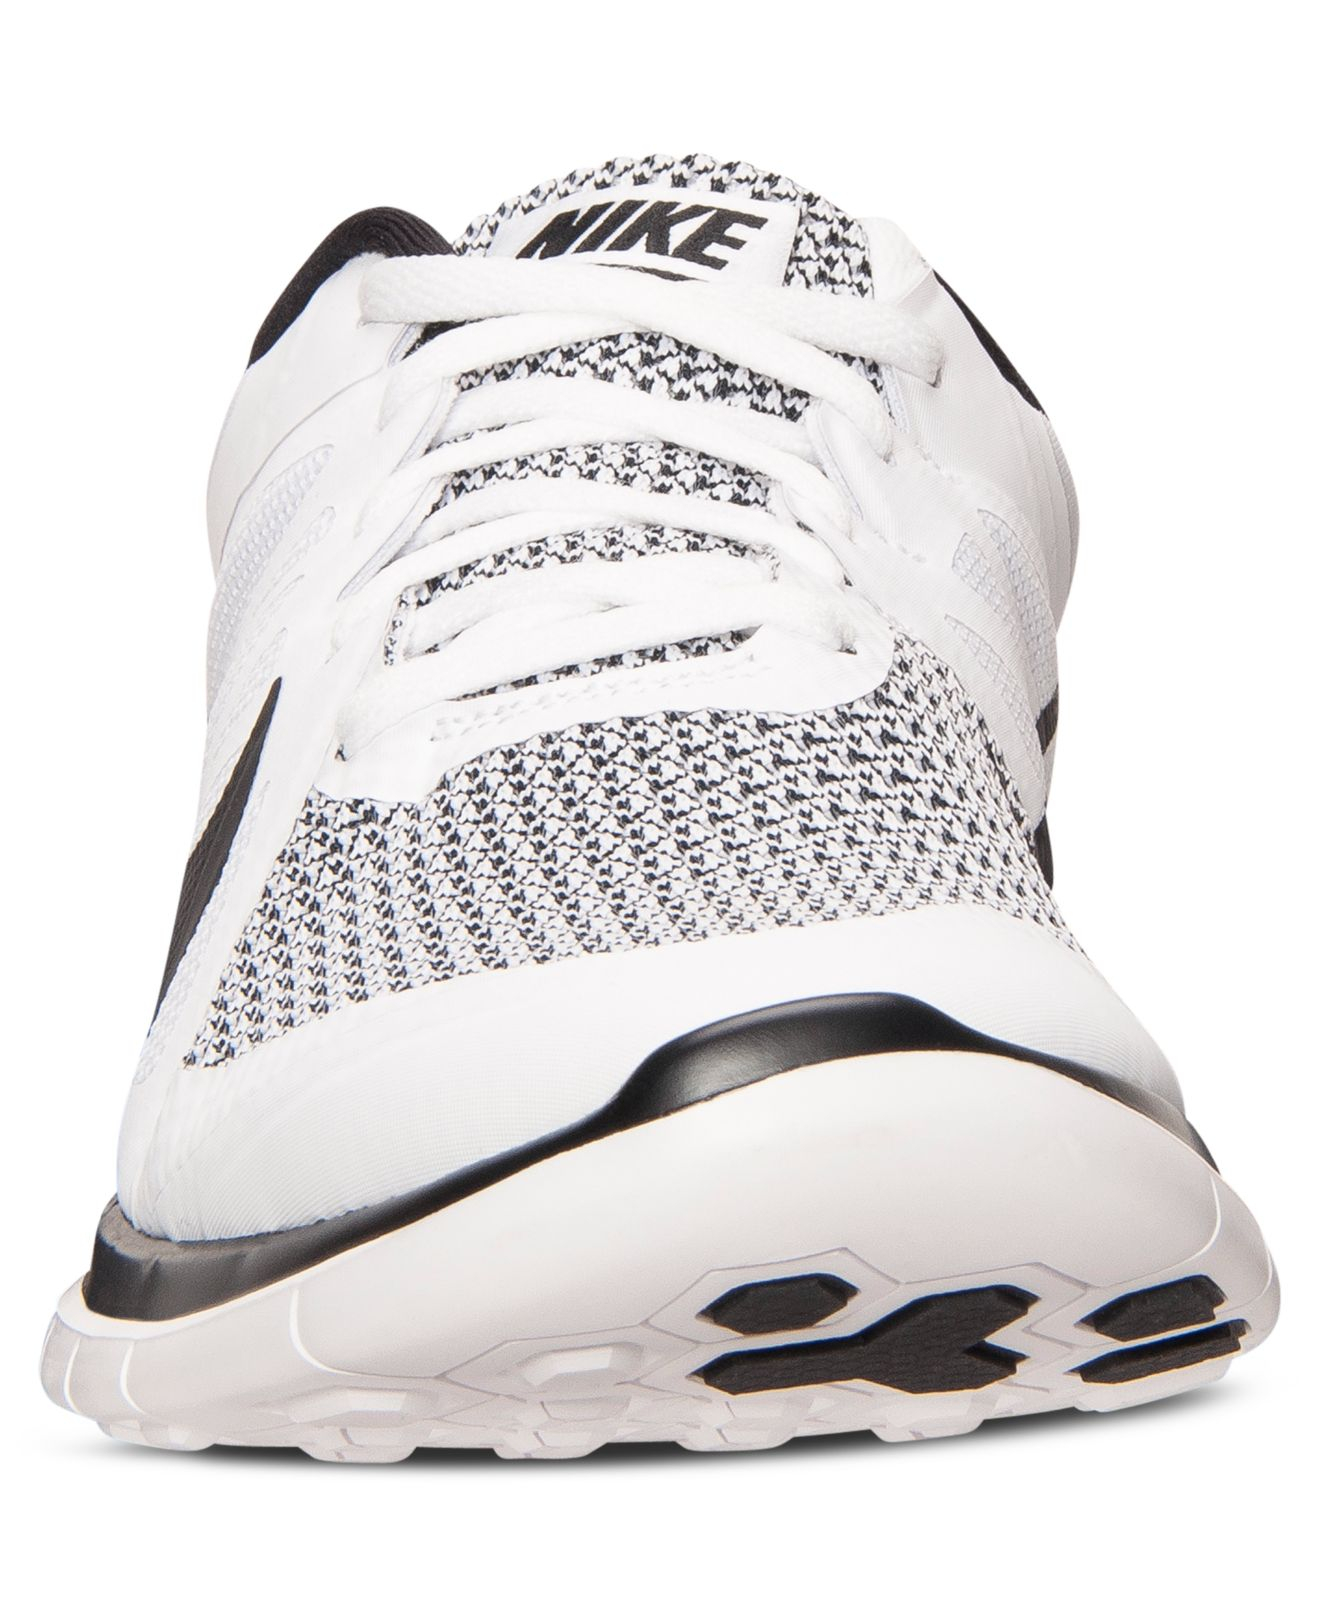 new product 17b80 f3588 ... where to buy lyst nike mens free 4.0 v4 running sneakers from finish  line in white